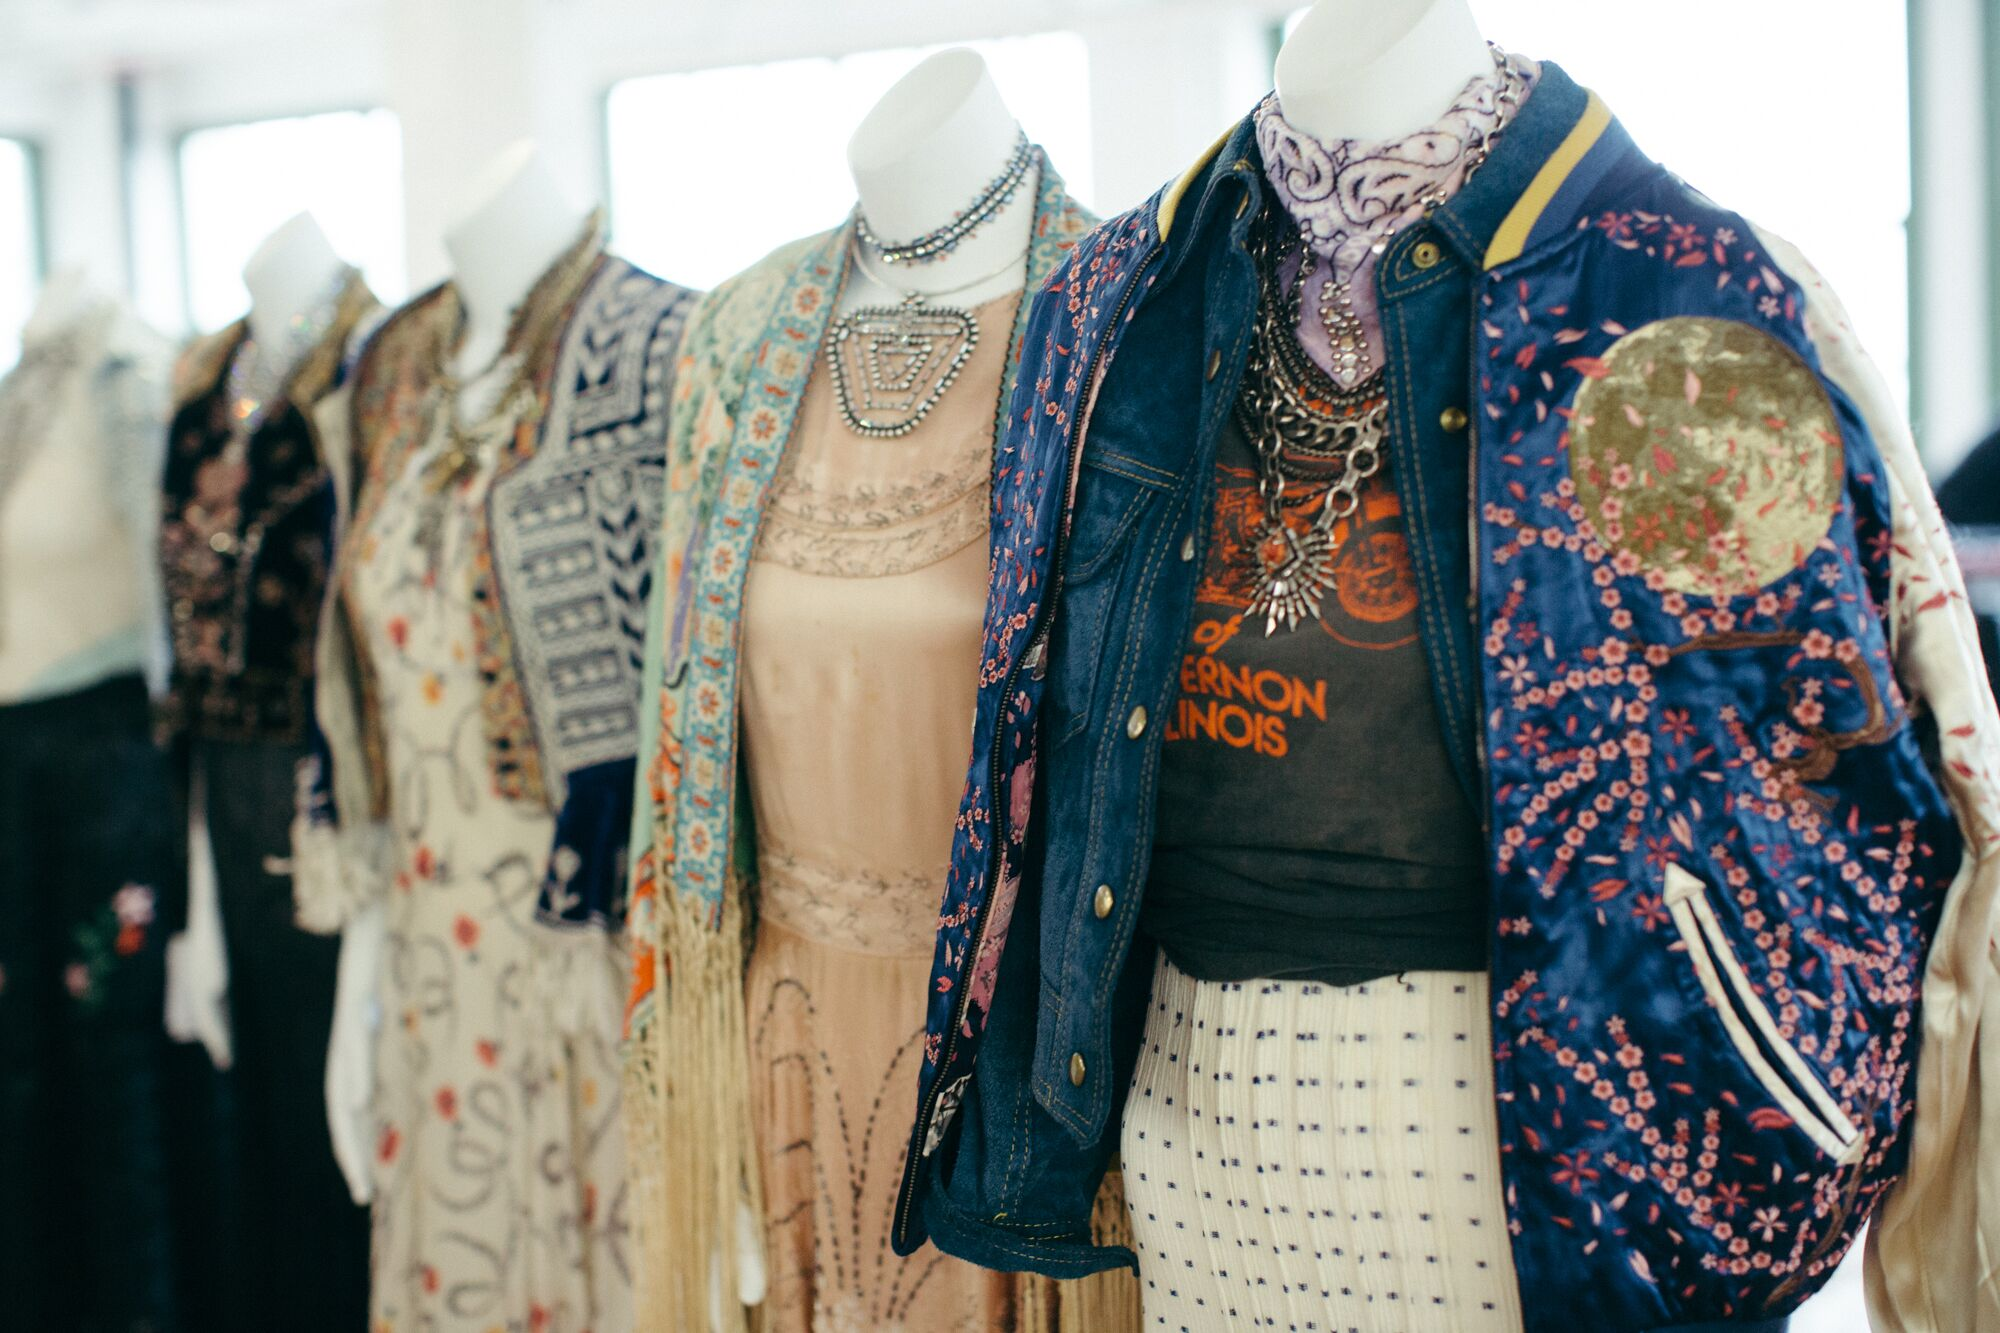 A Guide To The Best Vintage Fashion Stores In New York